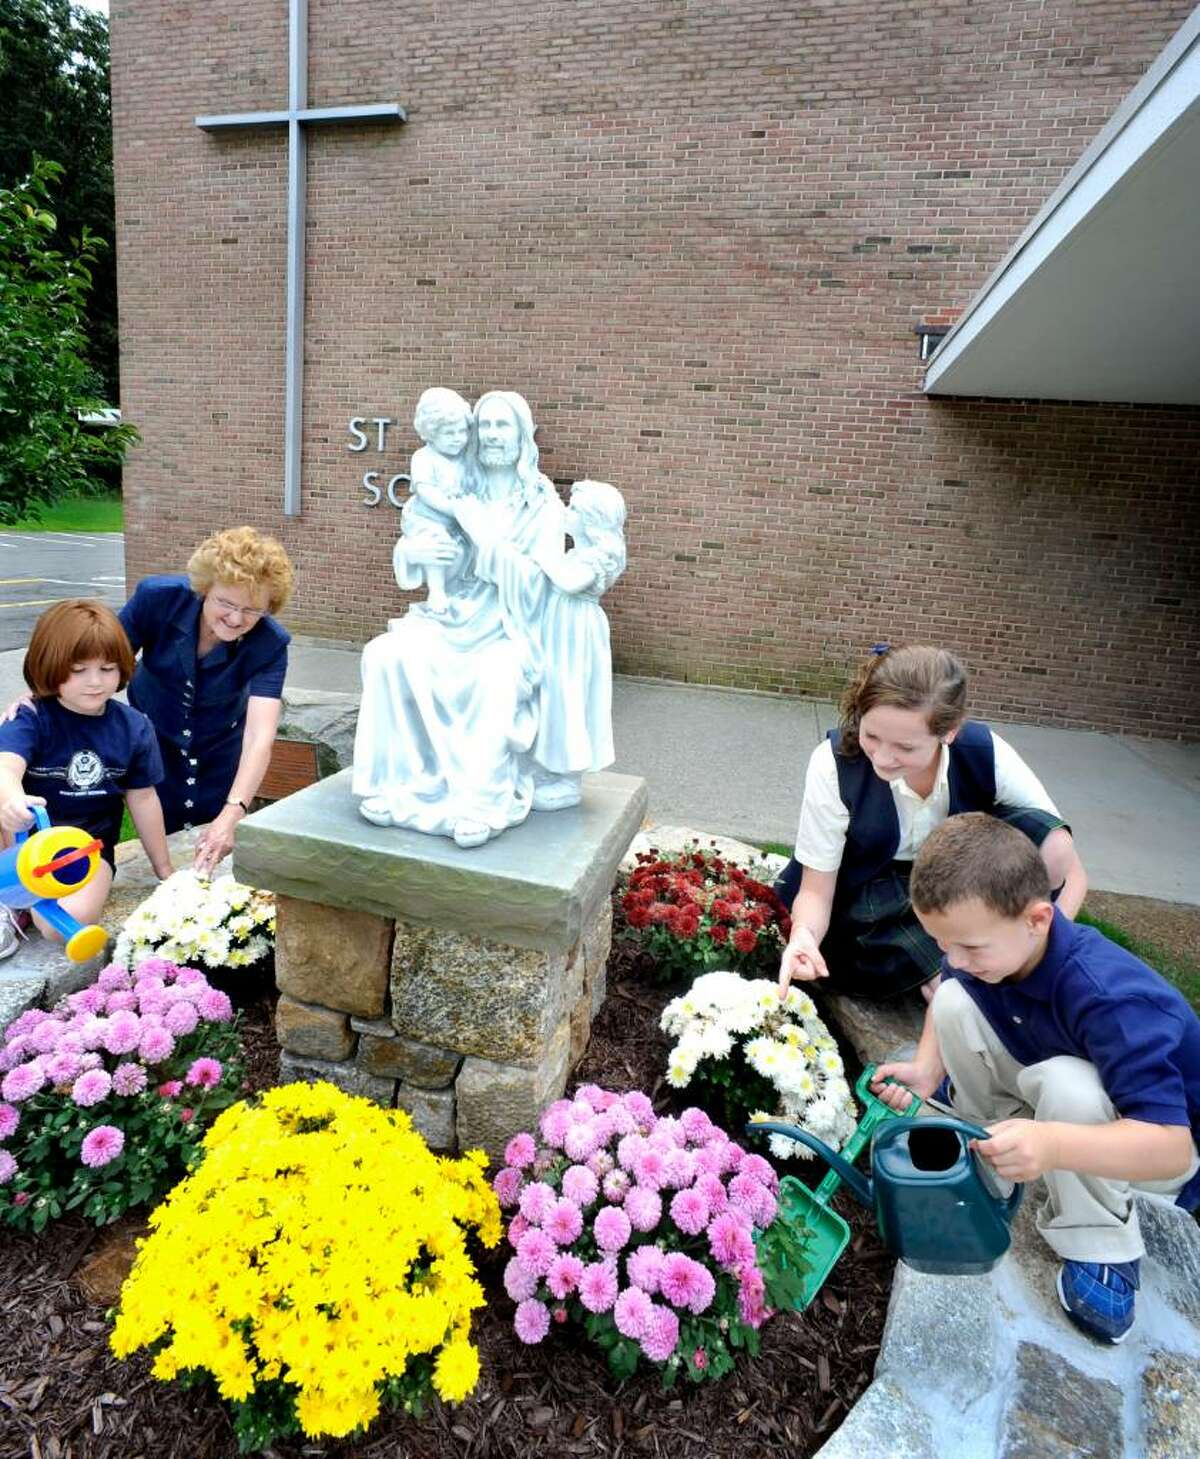 Saint Mary School principal Sister Anne McCarthy, center left, supervises students: Judy Apotheker, first grade, left, Molly Gallagher, eighth grade, center right, and Anthony Manca, jr., kindergarten, right, caring for plants on Wenesday, Sept. 9, 2009, around a statue built in front of the Bethel school in honor of being named by the U.S. Dept. of Education as a Blue Ribbon School.